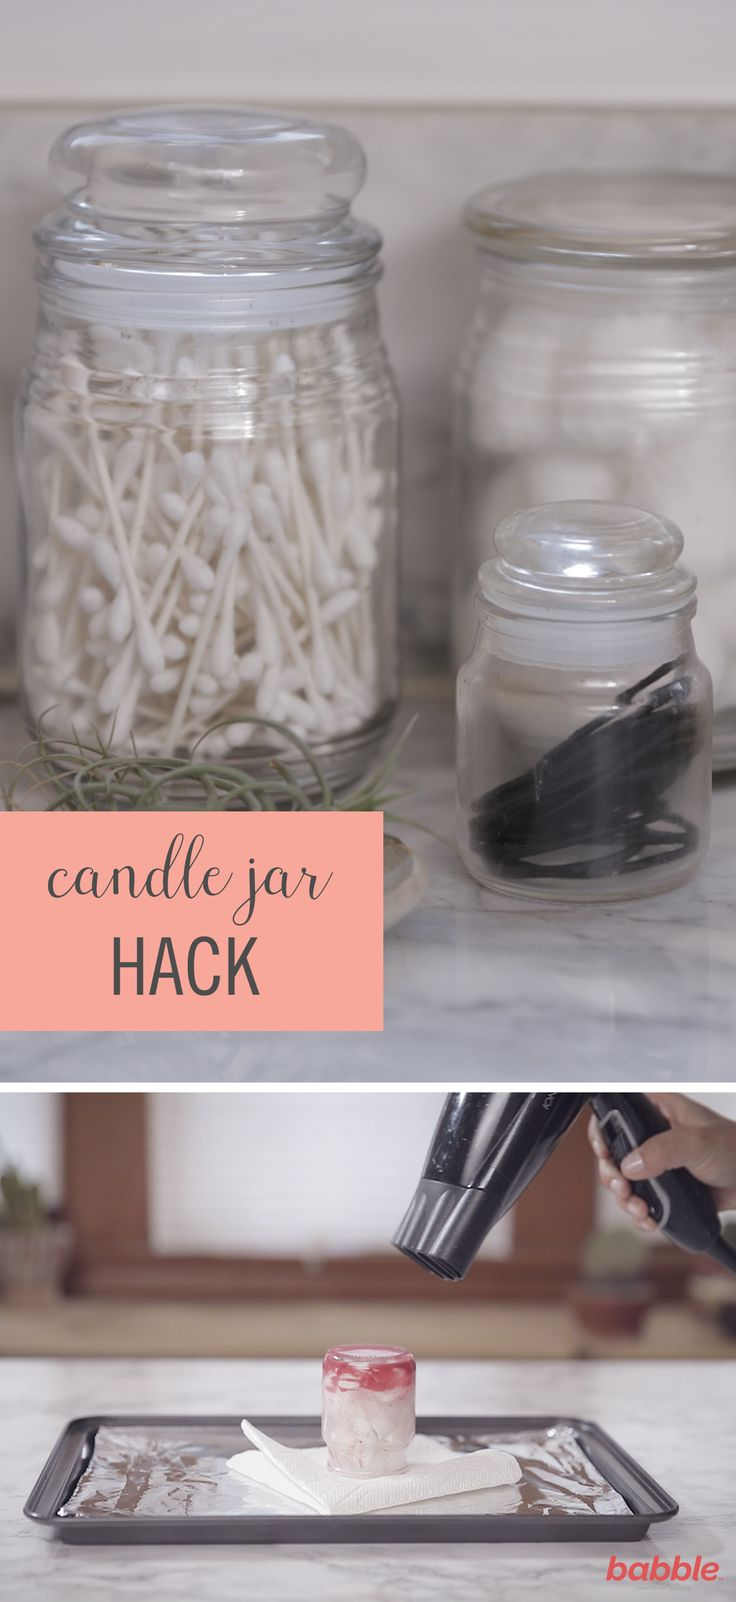 Candles not only fill your home with a pleasant aroma, but they also offer another function once the wick hits its last flicker. Instead of tossing old scents, use this simple hack to create an apothecary jar to organize your bathroom essentials. Add bobby pins, cotton balls, hair ties, you name it! To achieve this Candle Jar Hack, all you need is a baking pan, aluminum foil, paper towel, blow dyer, and used candle.